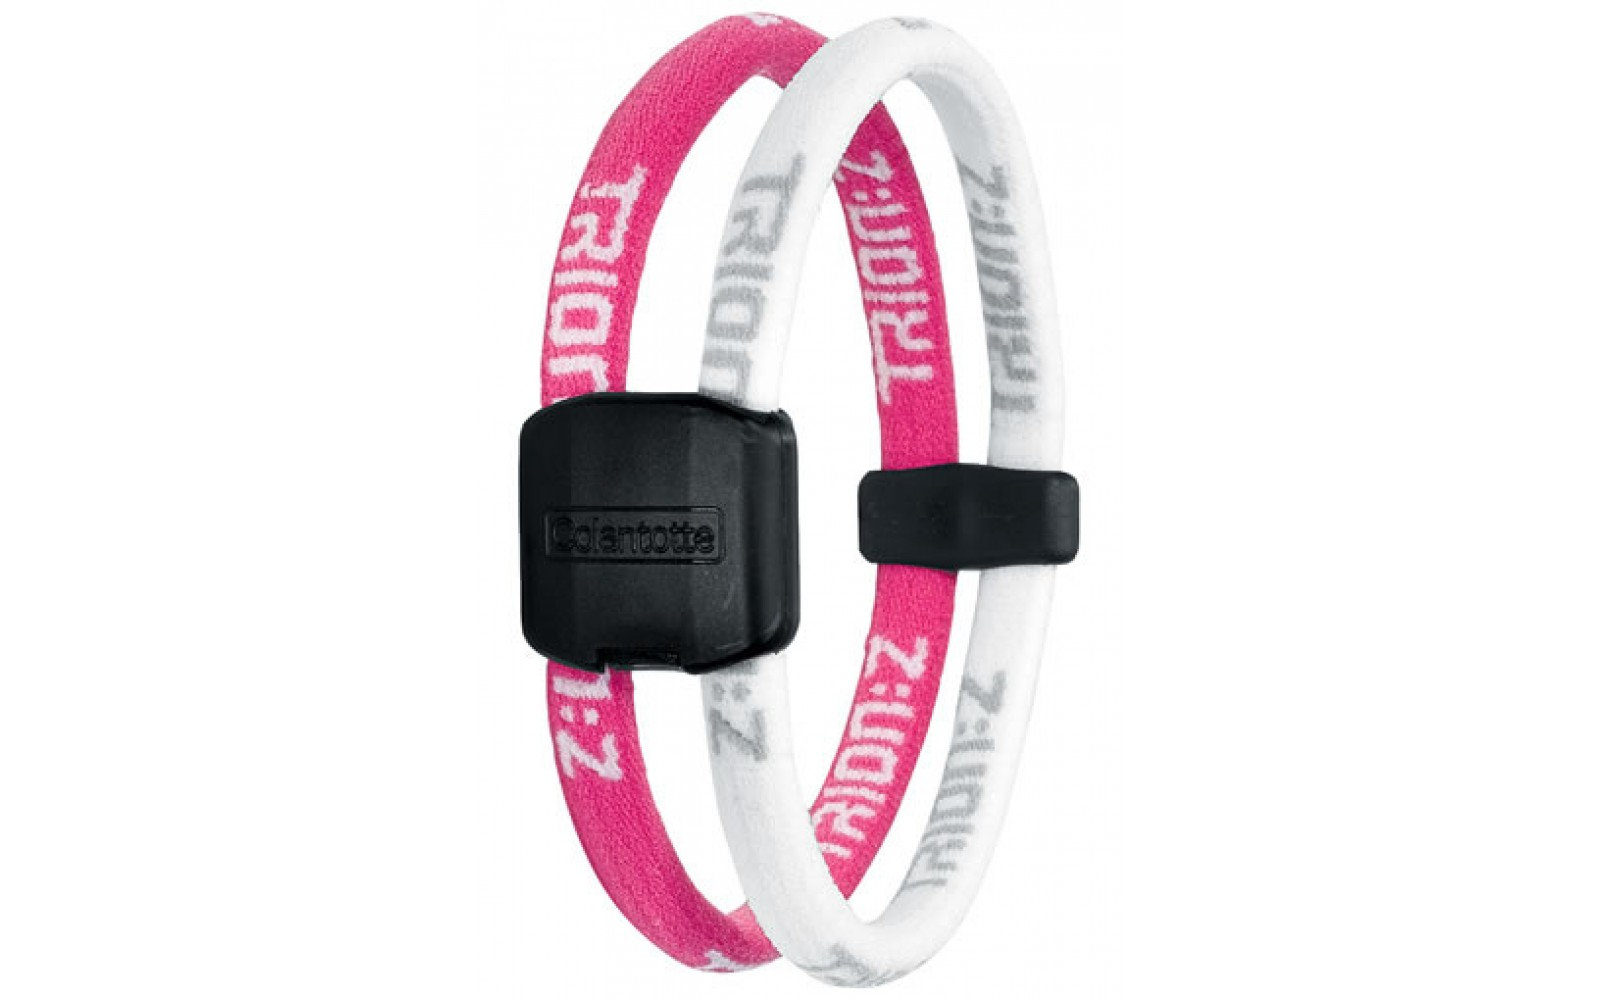 Trion:Z Magneet Armband, Kleur : Roze/Wit, Maat : Small